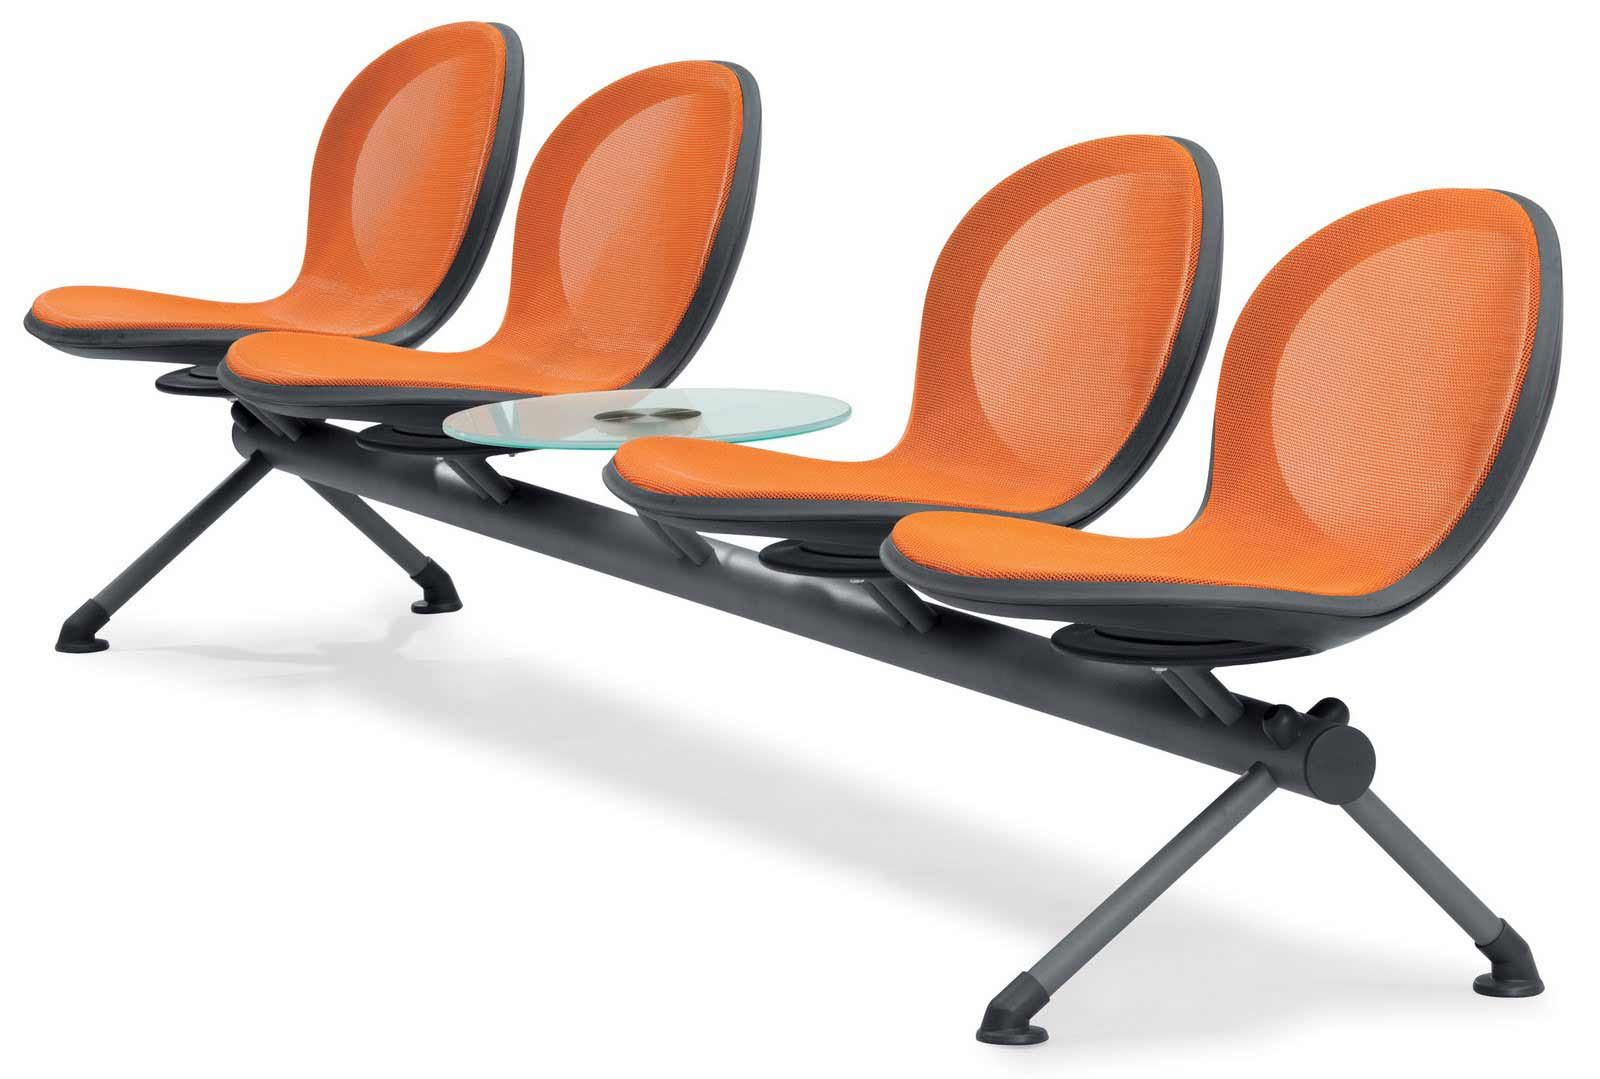 enjoy this beam seating solution for indoor and outdoor use net series beam chairs are available in 7 unique colors